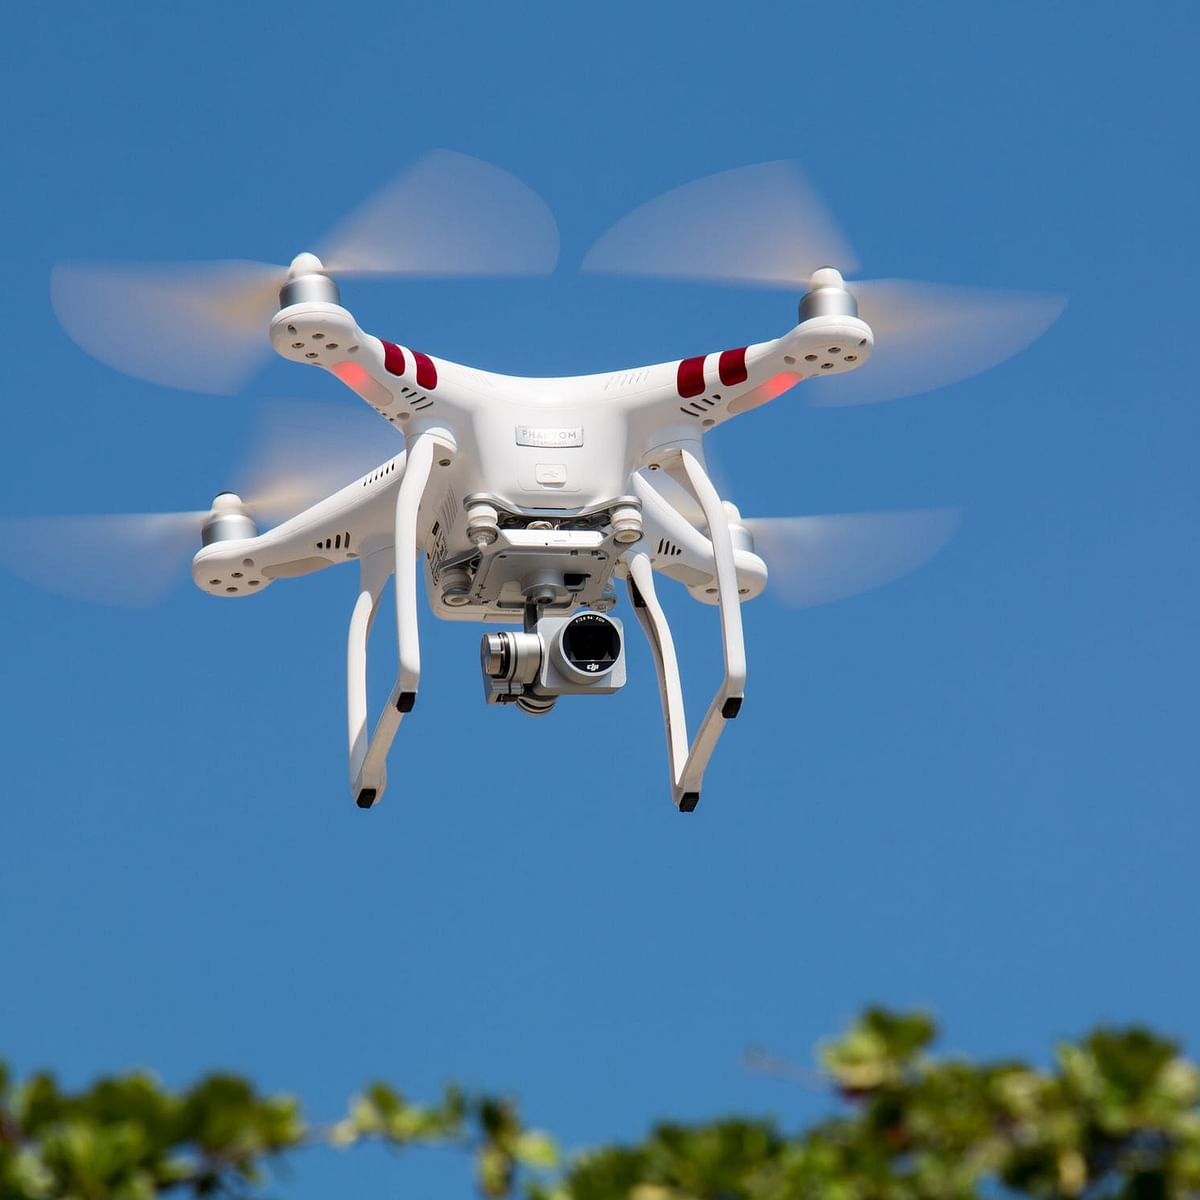 Drones spotted at 3 locations in Jammu and Kashmir's Samba district, says BSF